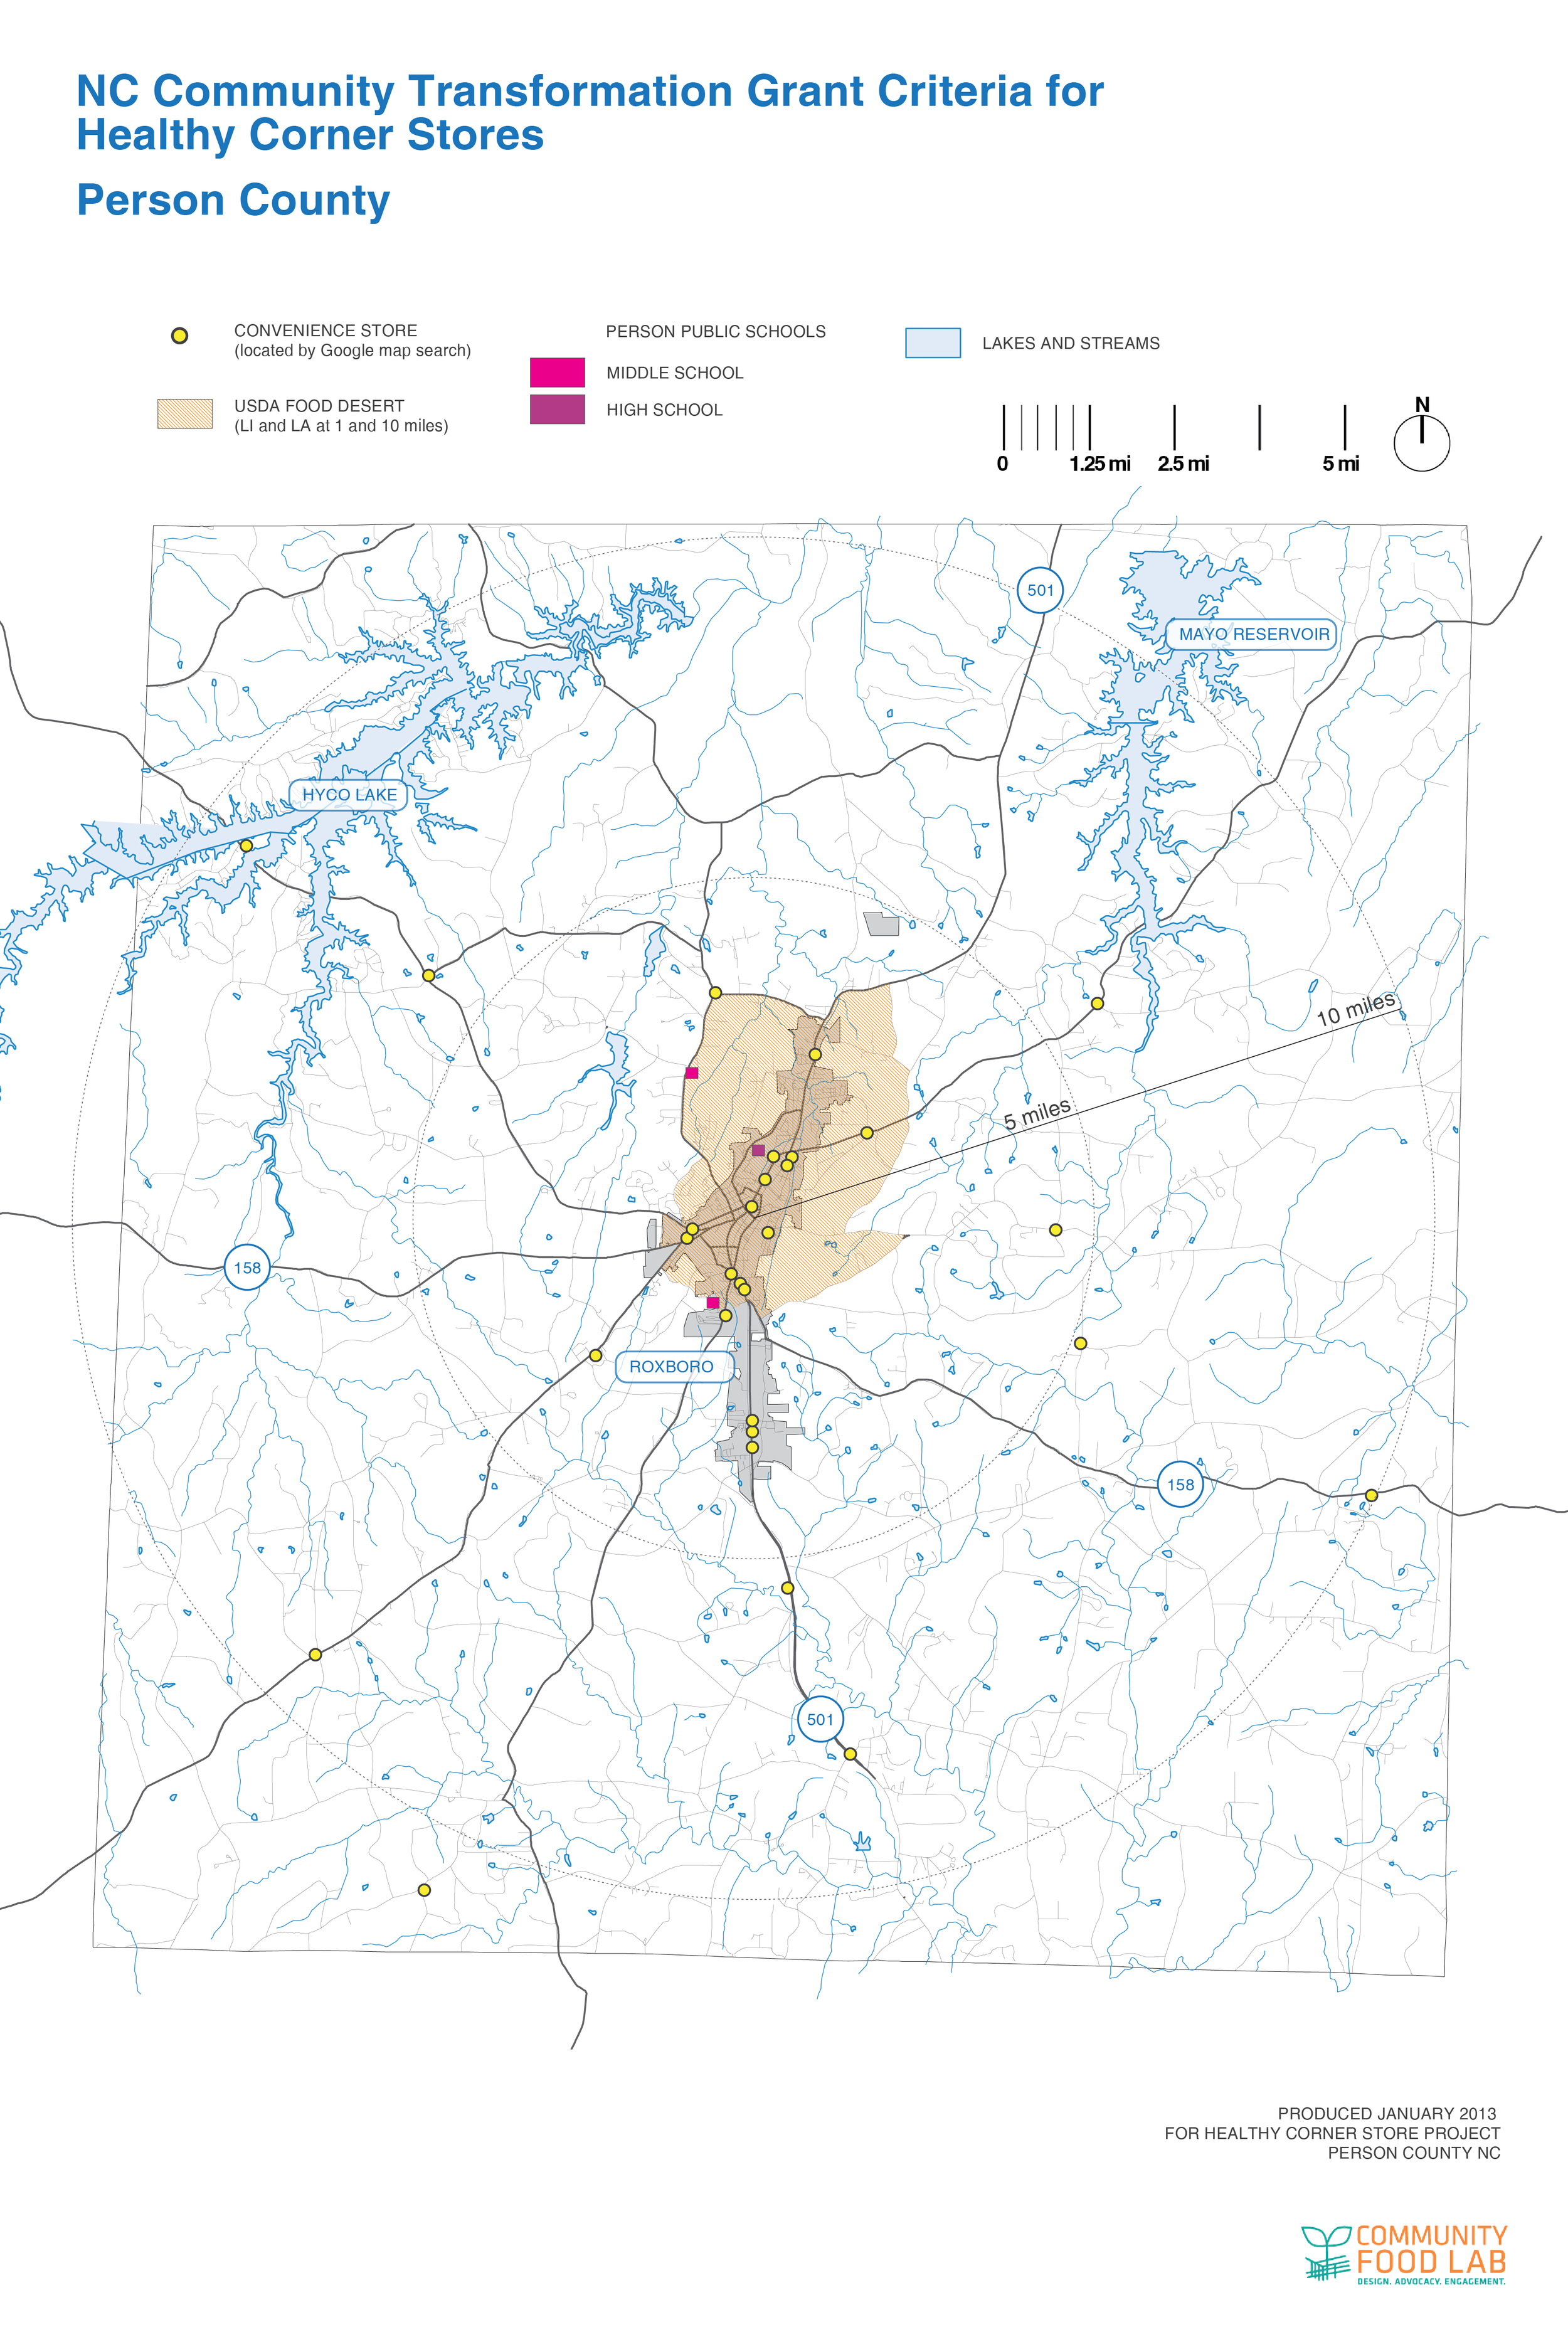 PersonCounty-01.jpg